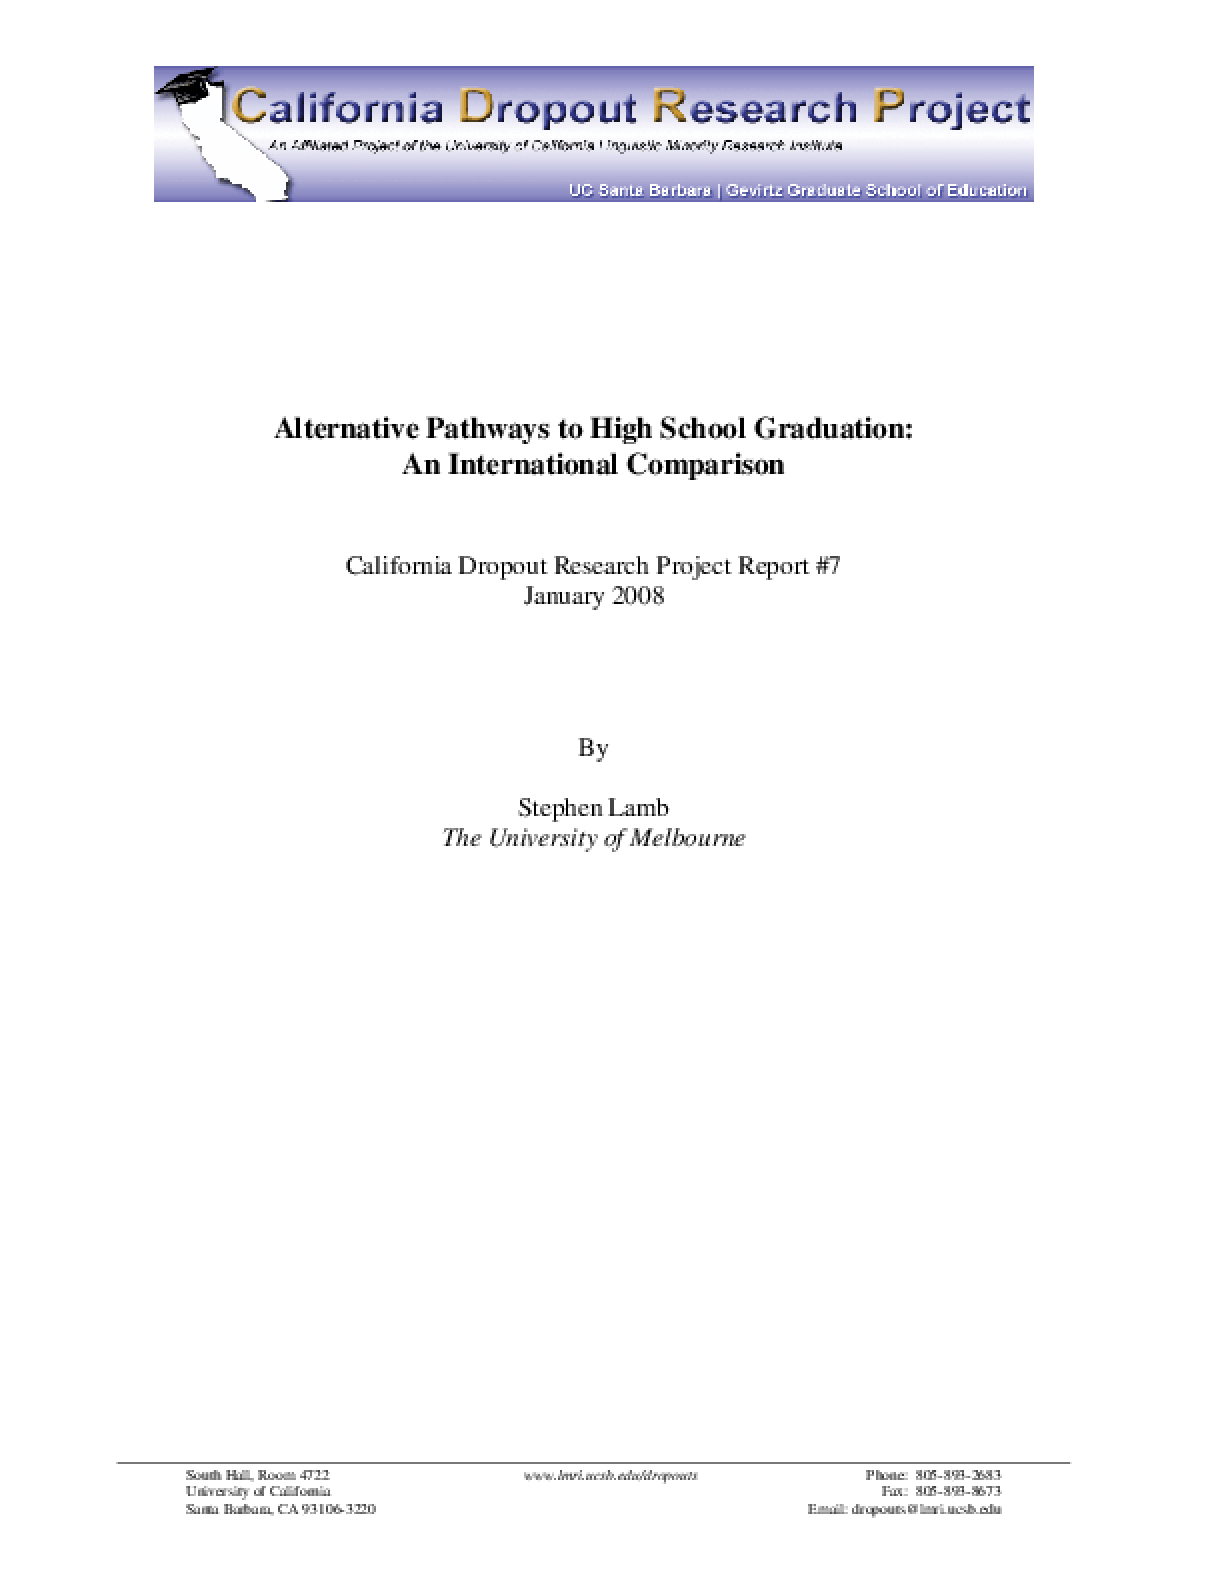 Alternative Pathways to High School Graduation: An International Comparison